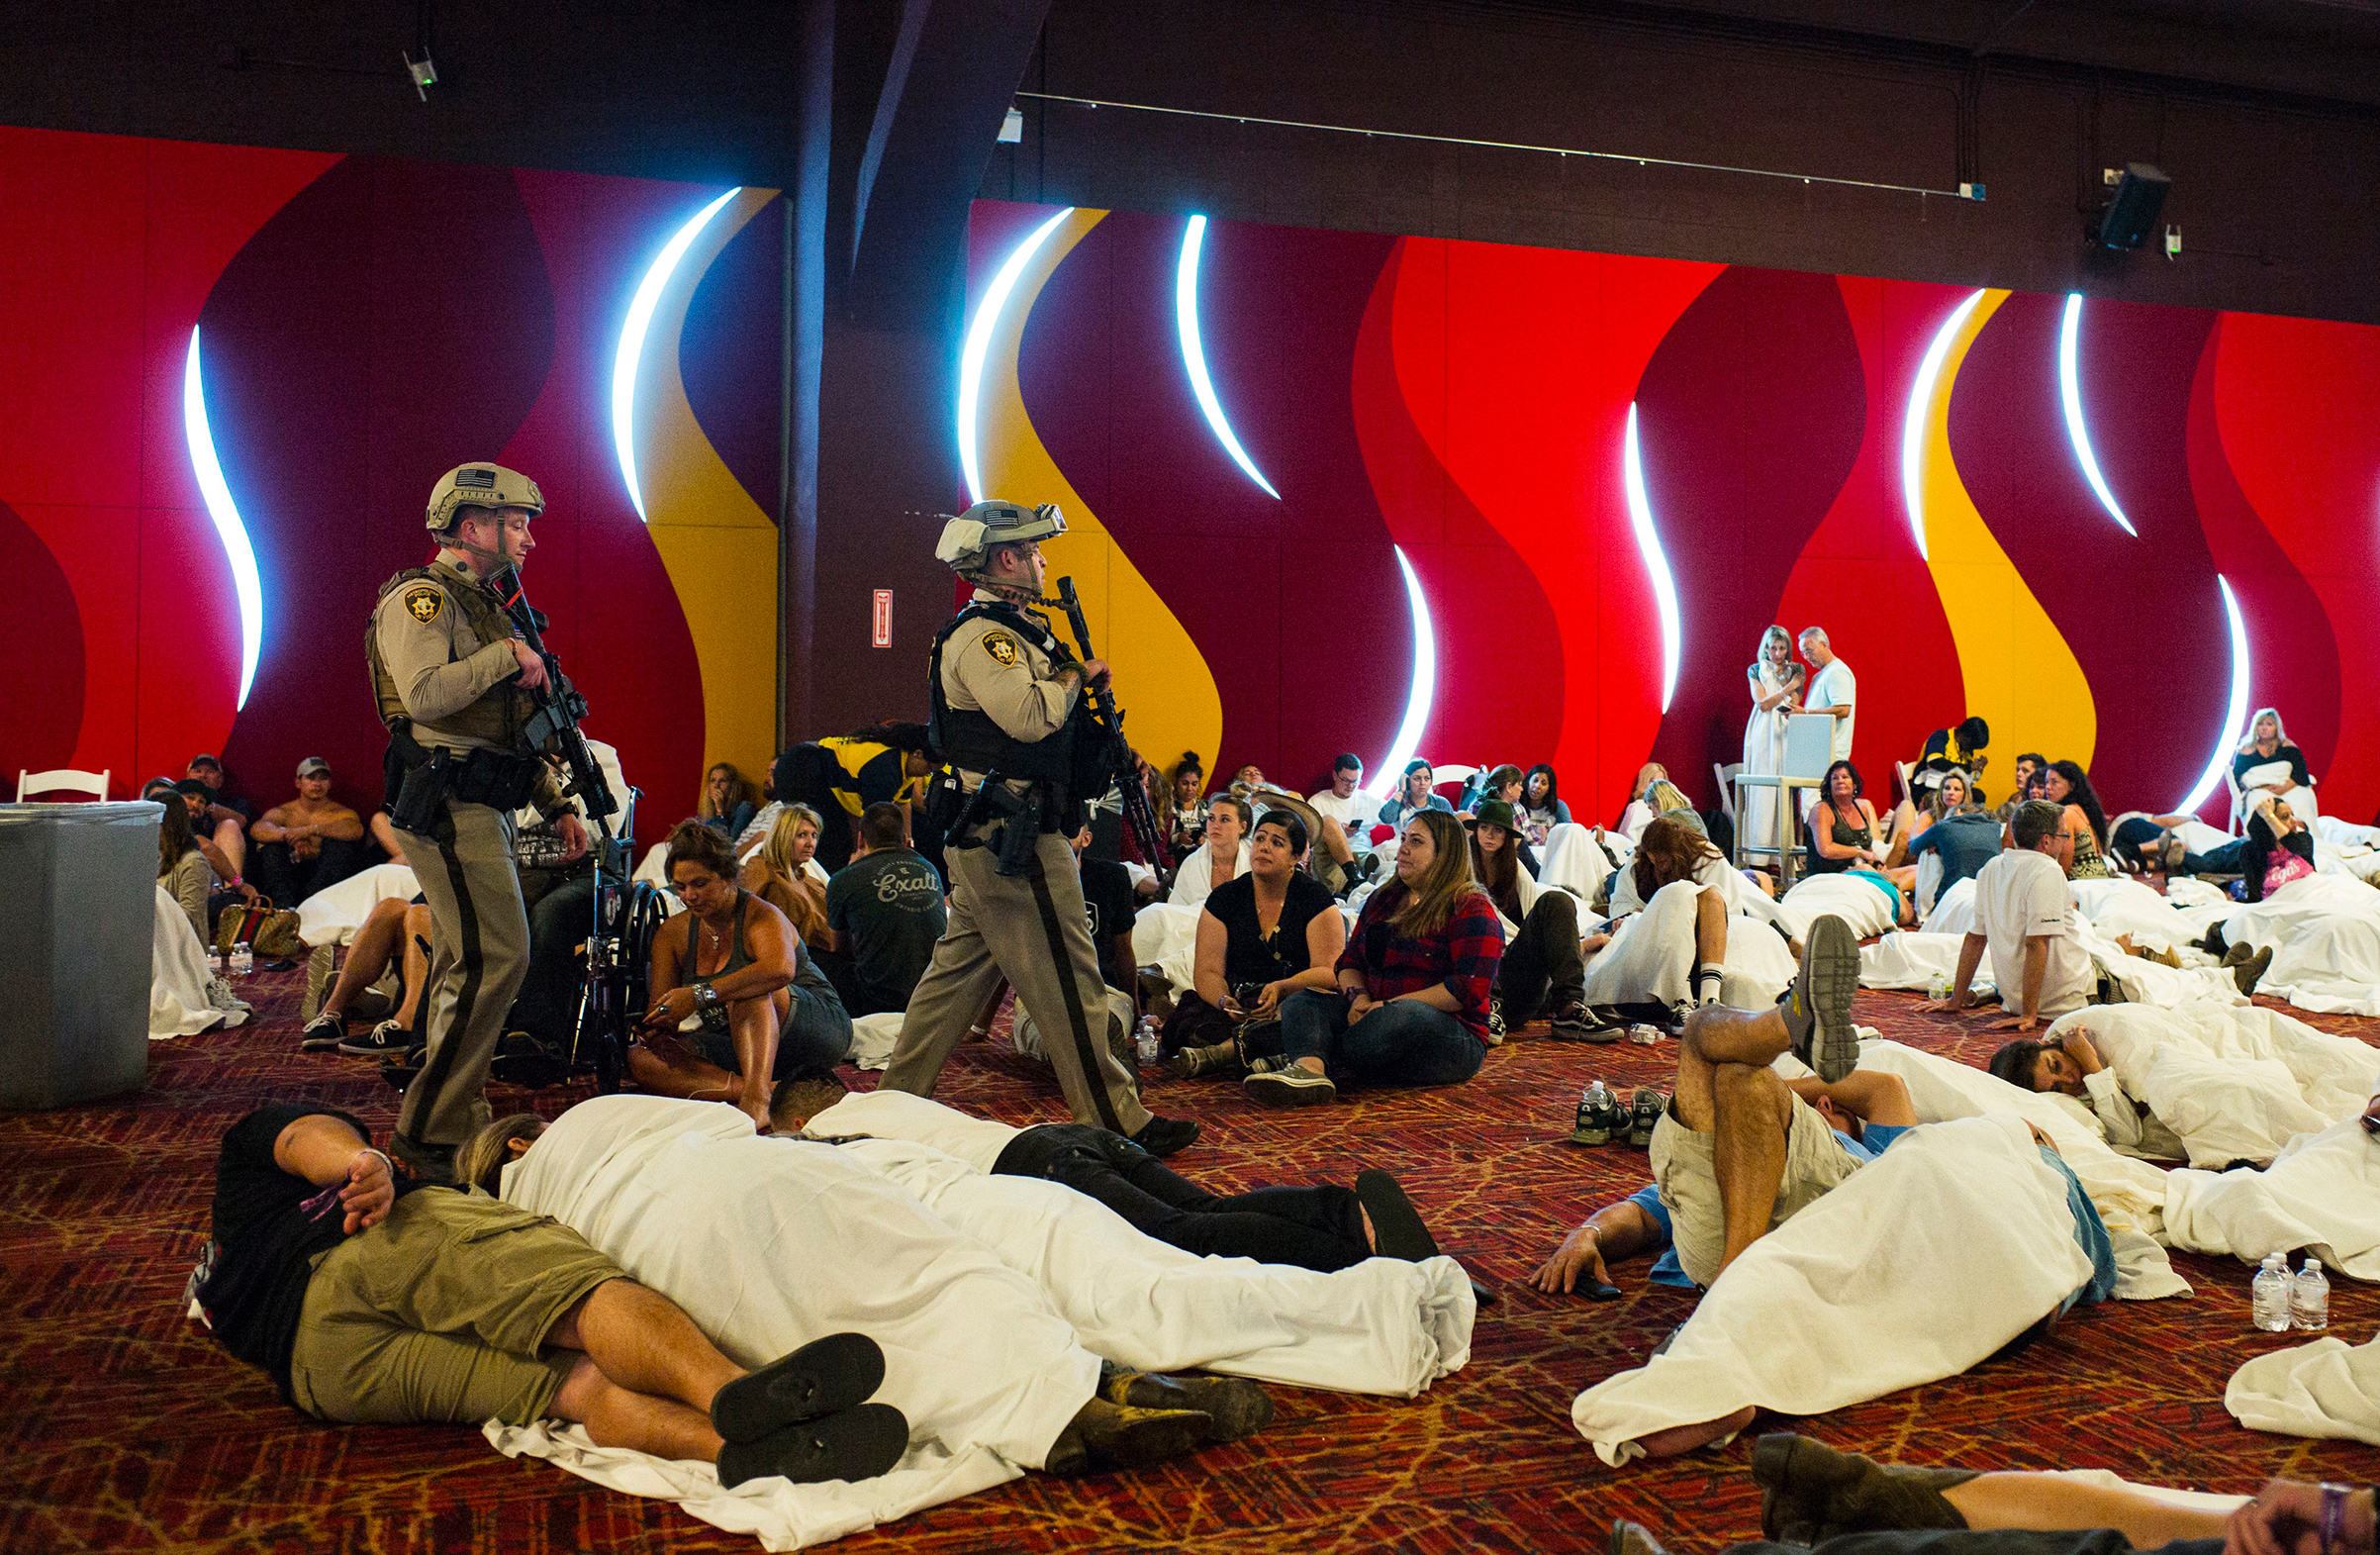 Authorities sweep through a part of the Tropicana during a lockdown following an active shooter situation on the Las Vegas Strip on Oct. 2, 2017.